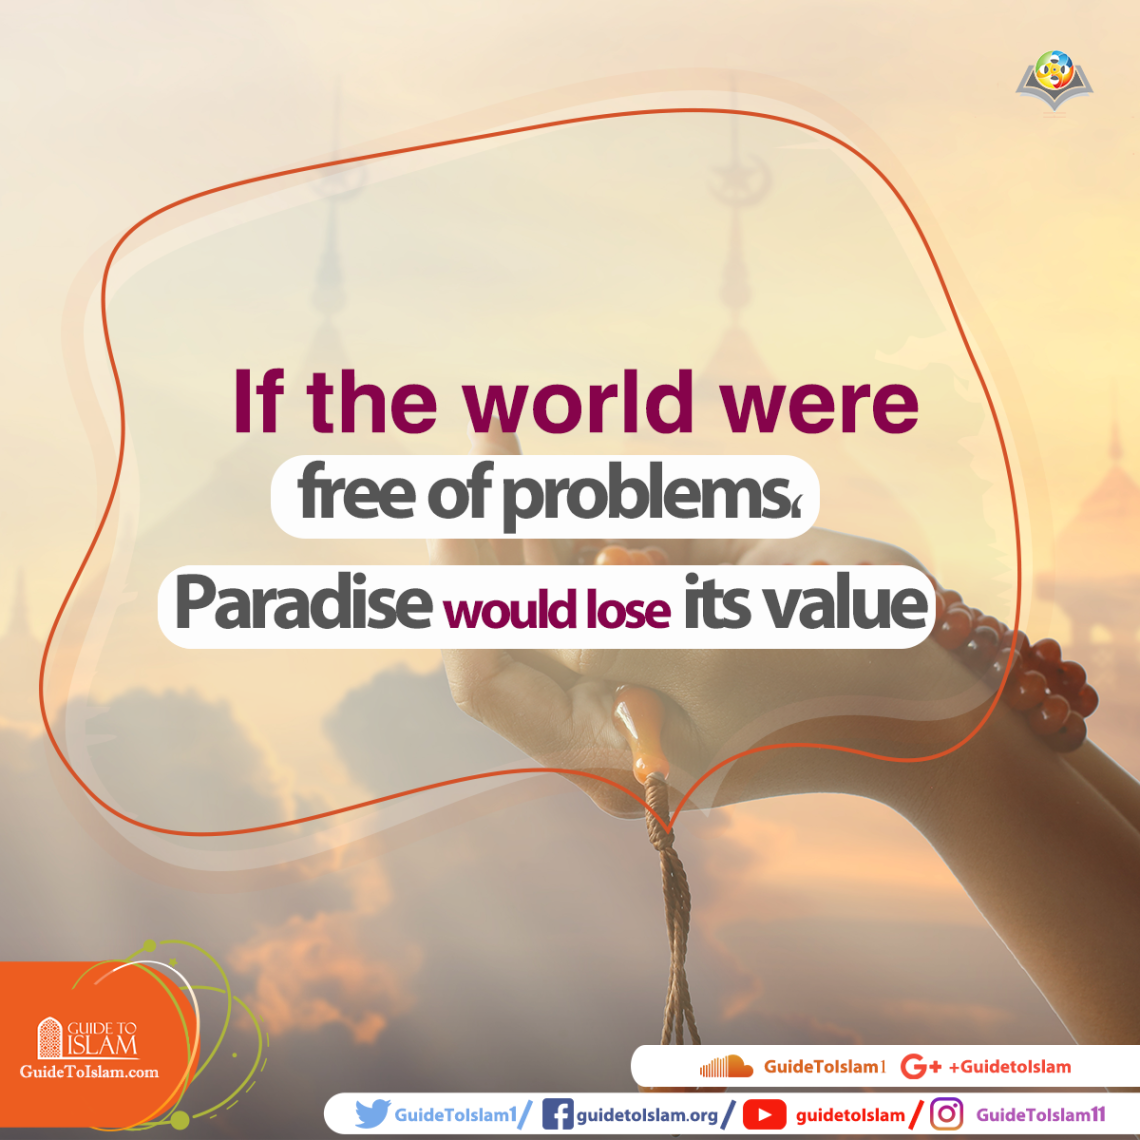 The value of paradise